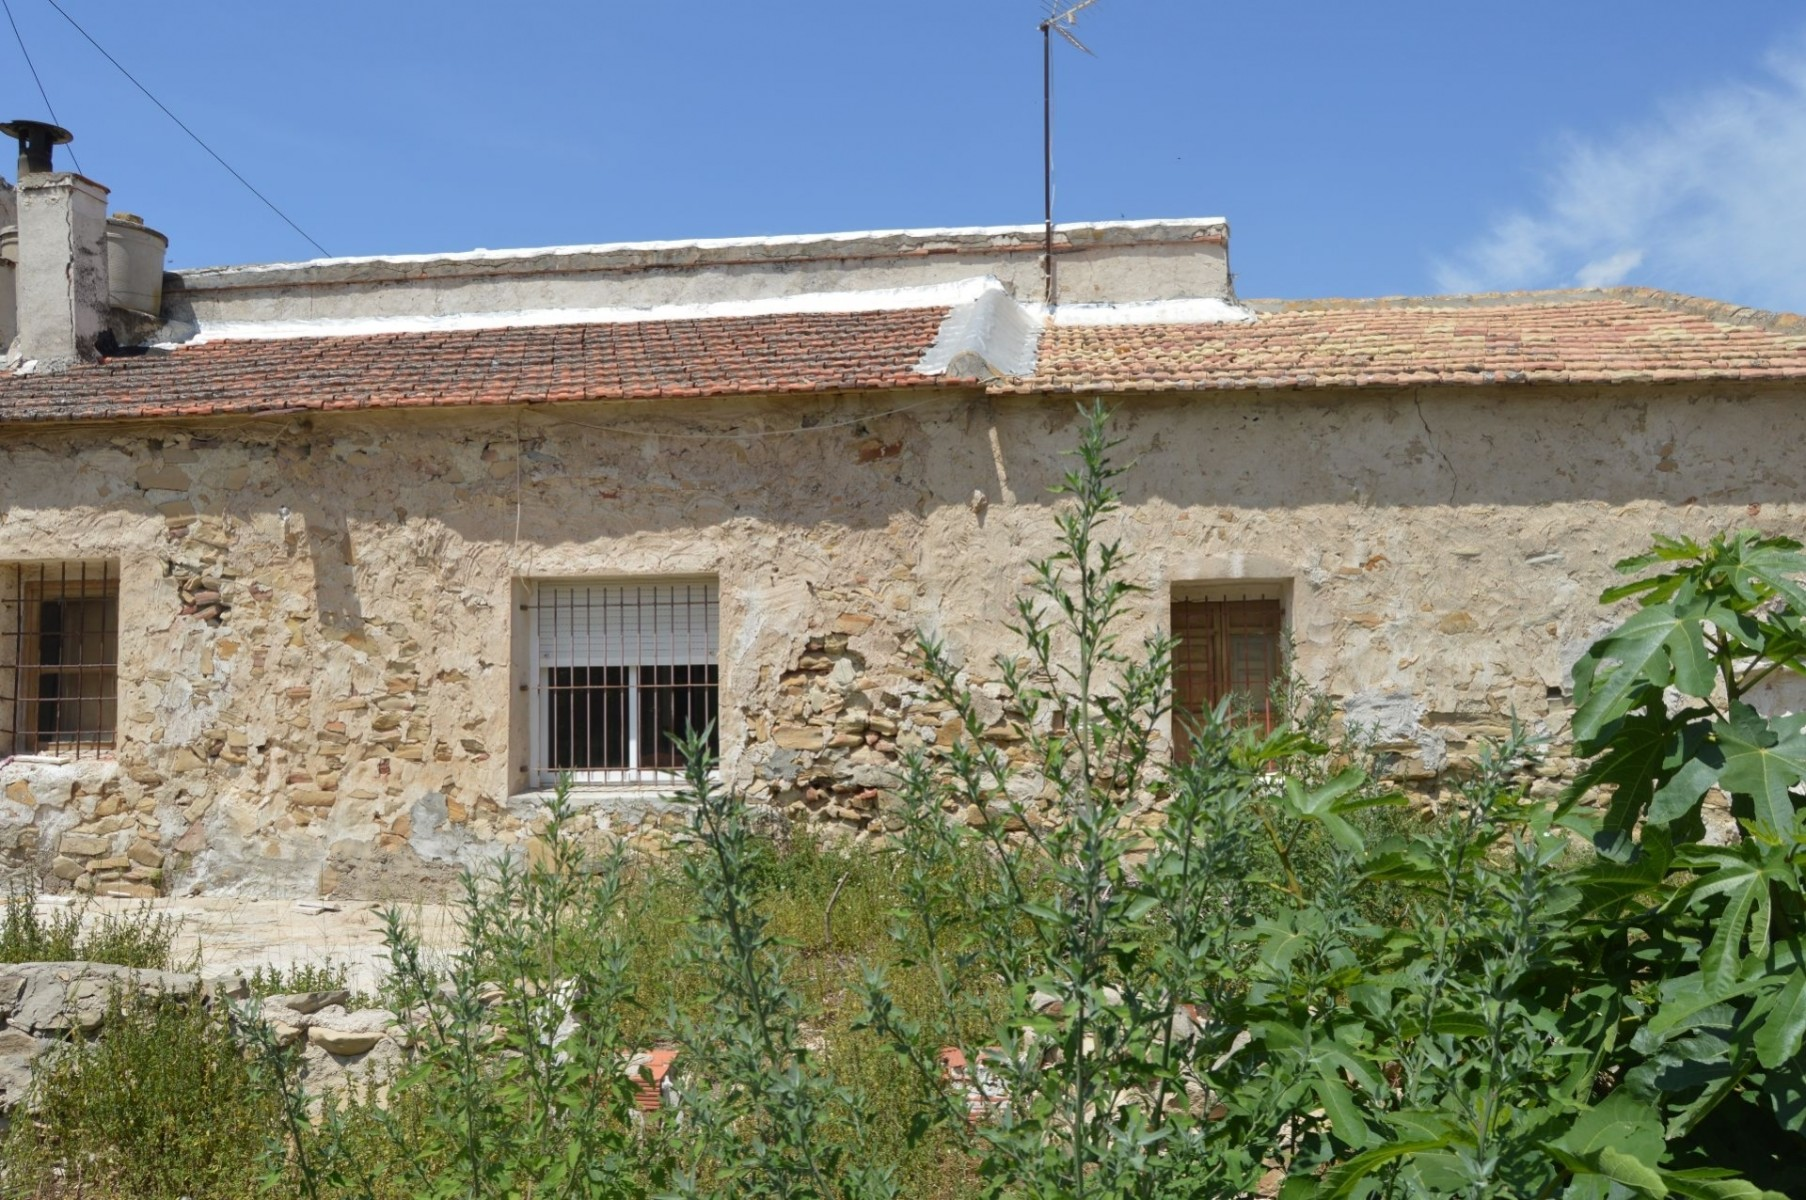 Propery For Sale in Torremendo, Spain image 1